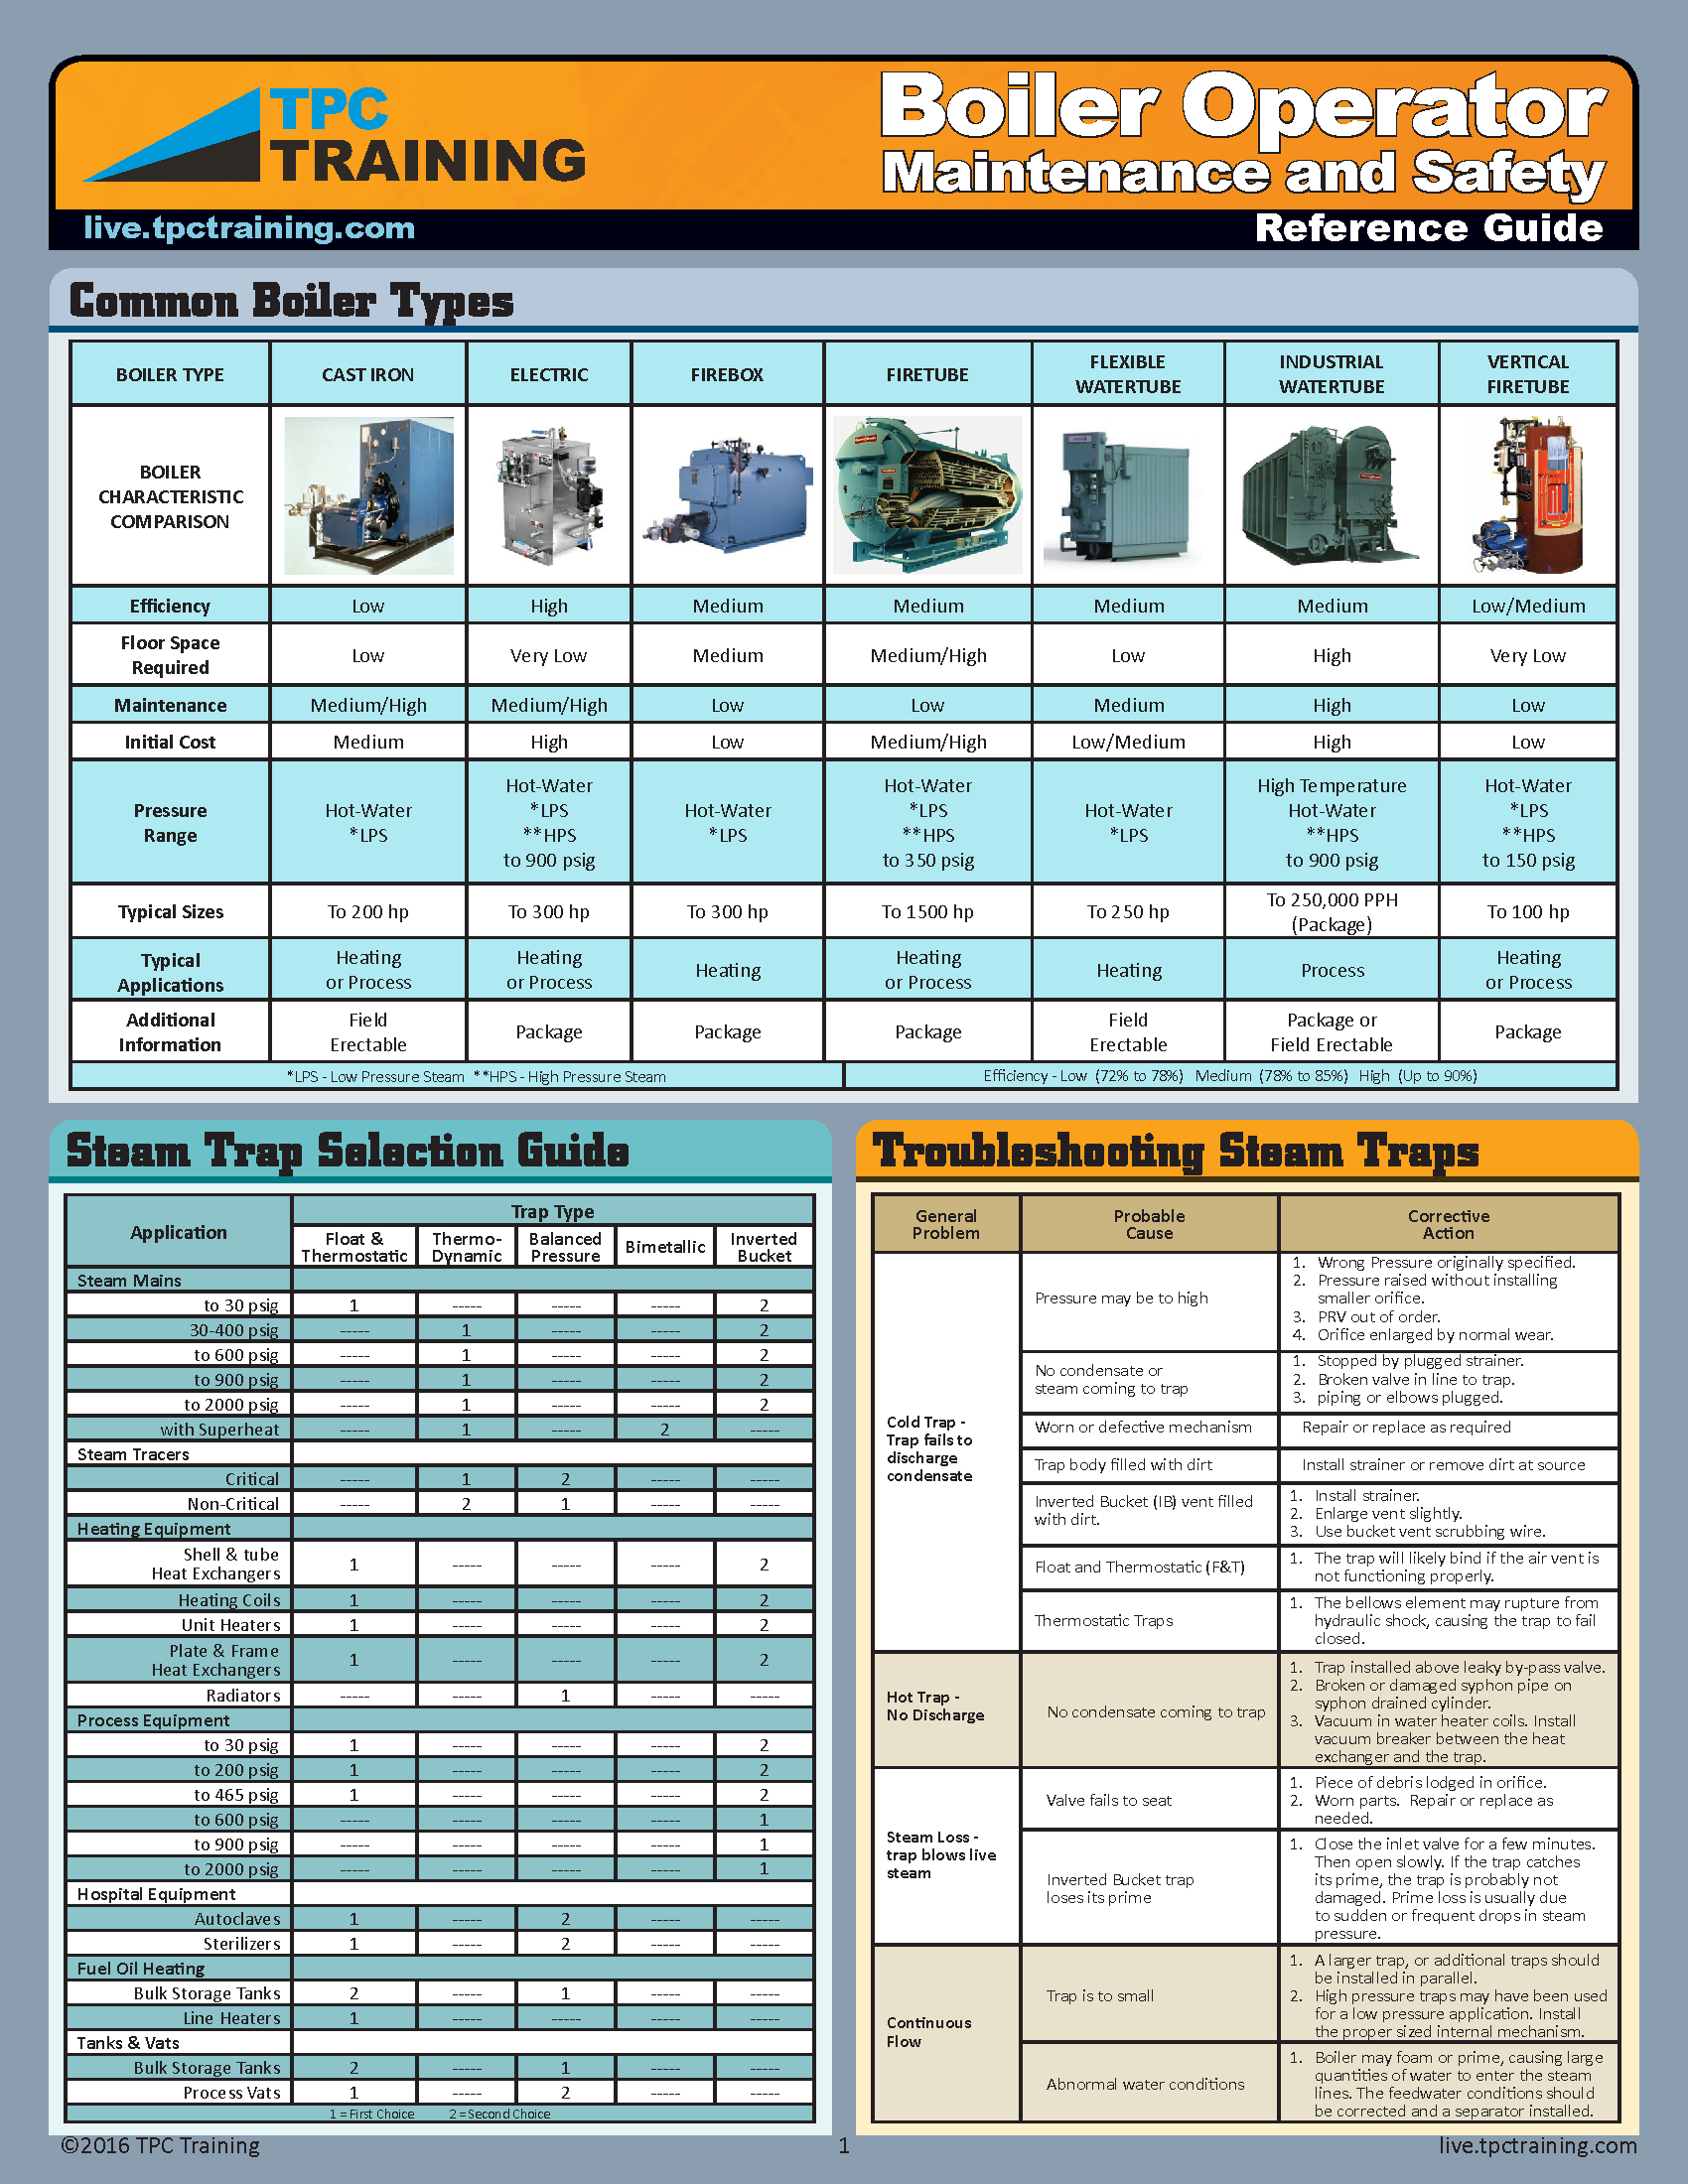 Quick Reference Guide: Boiler Operator Maintenance and Safety